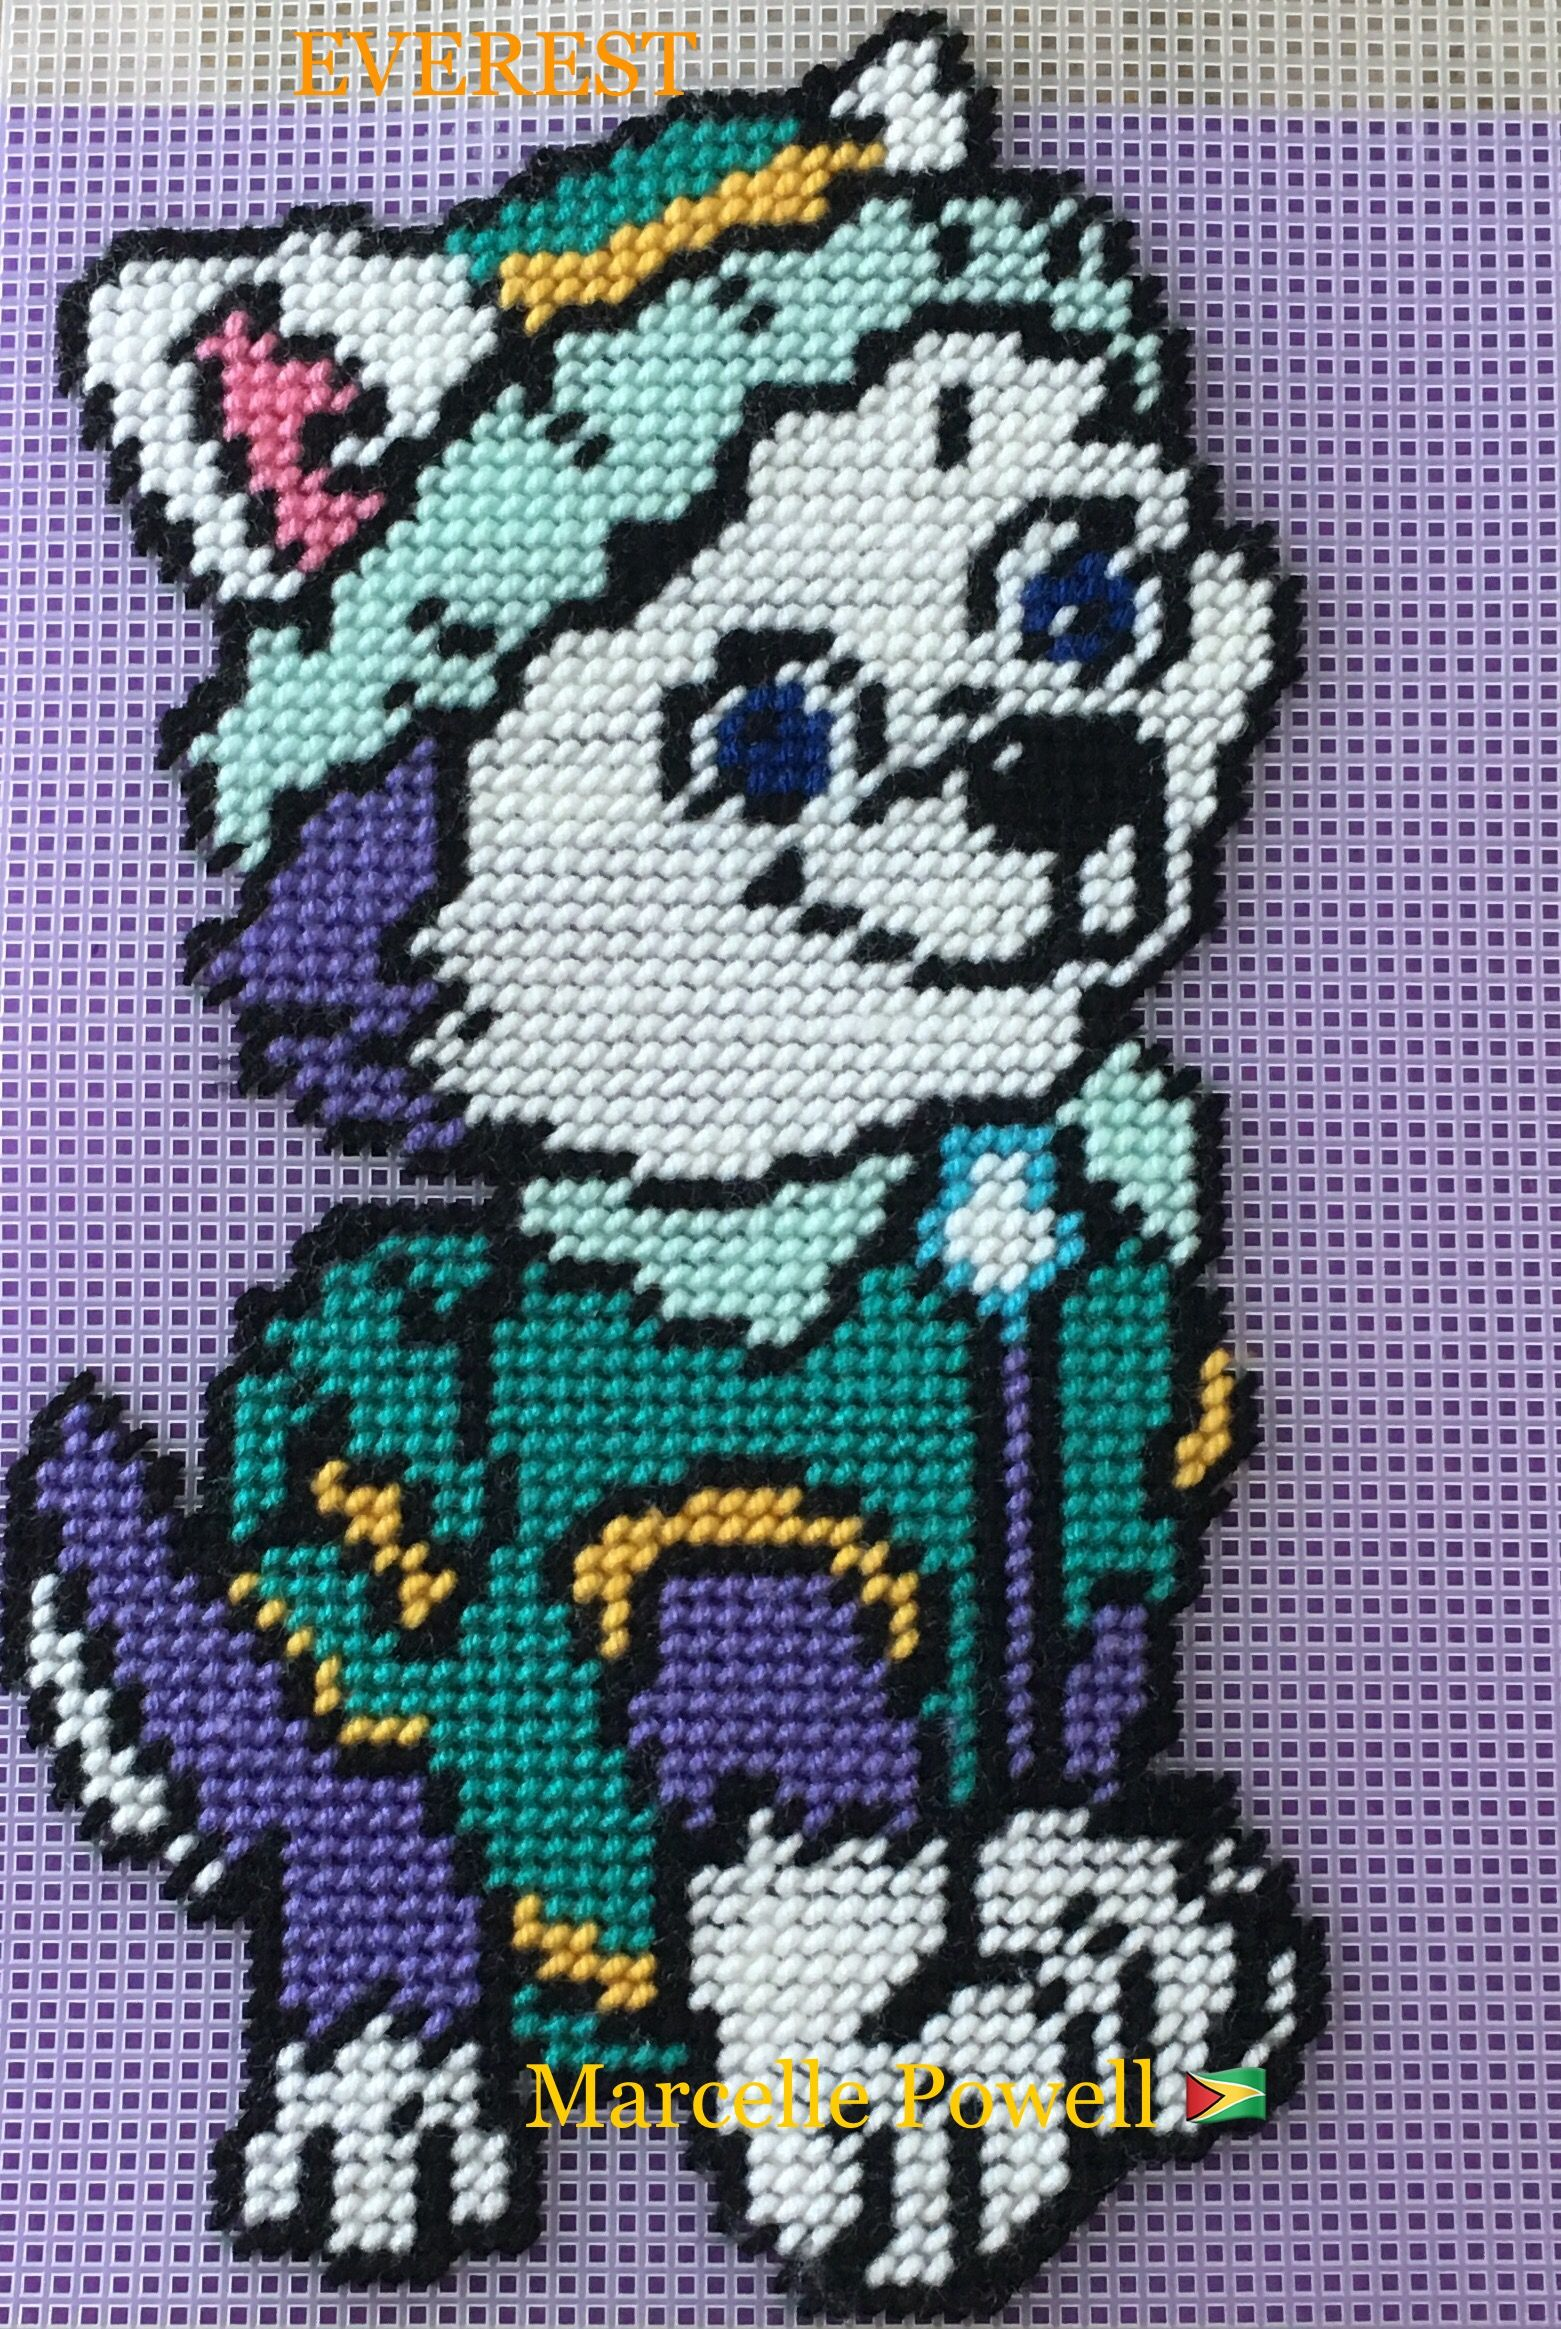 Marcel Afghan Knitting Pattern : Paw Patrol (EVEREST) by Marcelle Powell ? my patterns ...